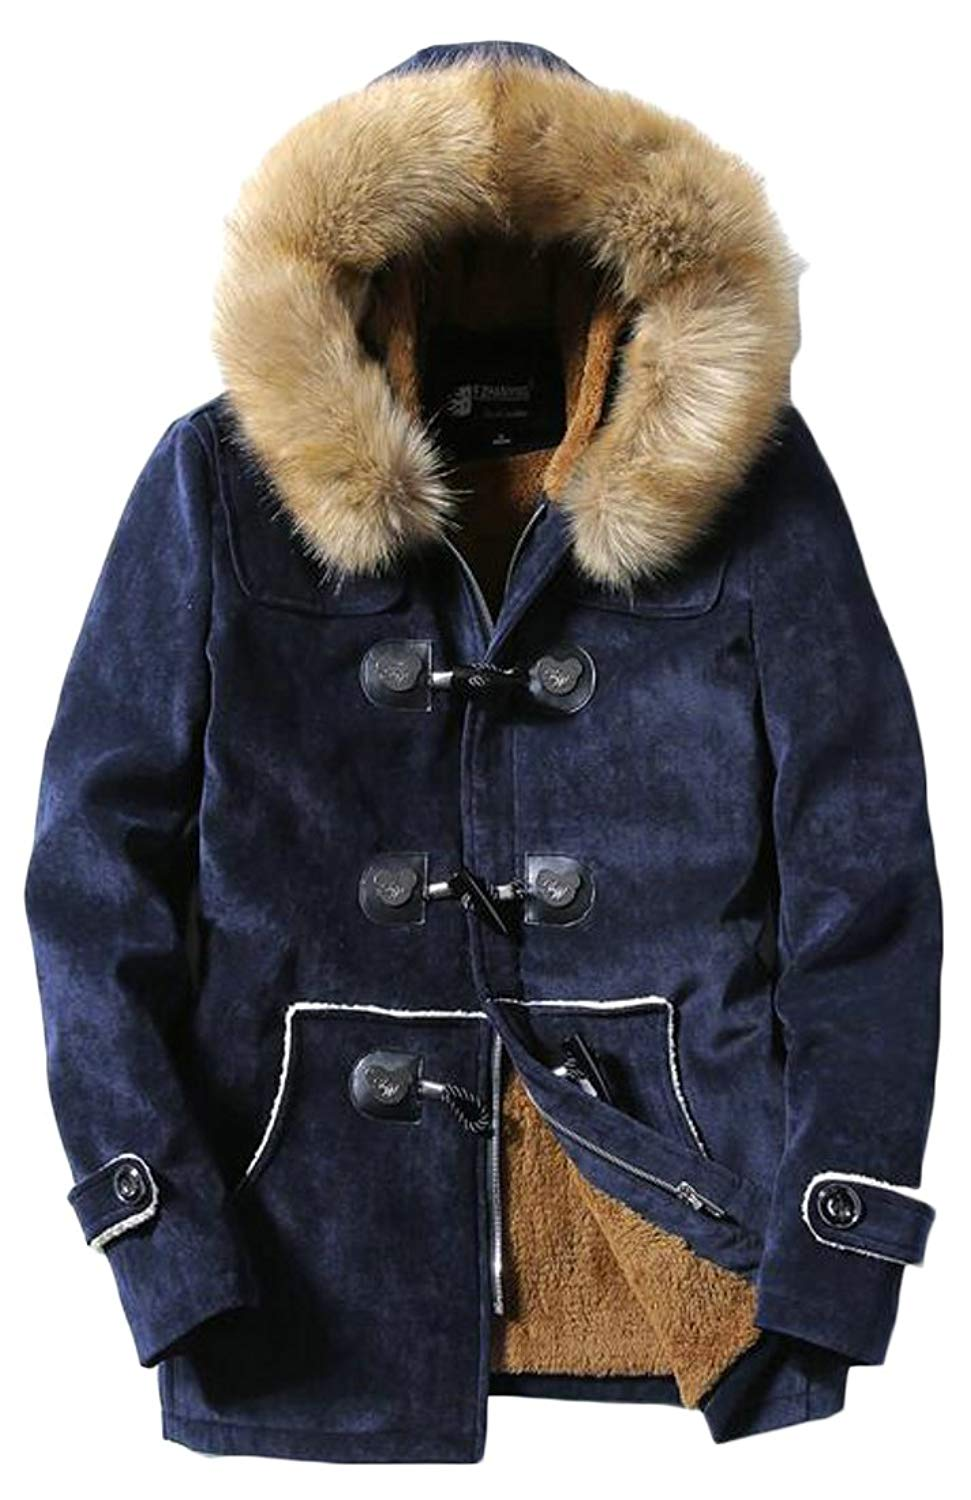 ARTFFEL Mens Fleece Fall /& Winter Warm Faux Fur Lined Quilted Jacket Coat Outerwear